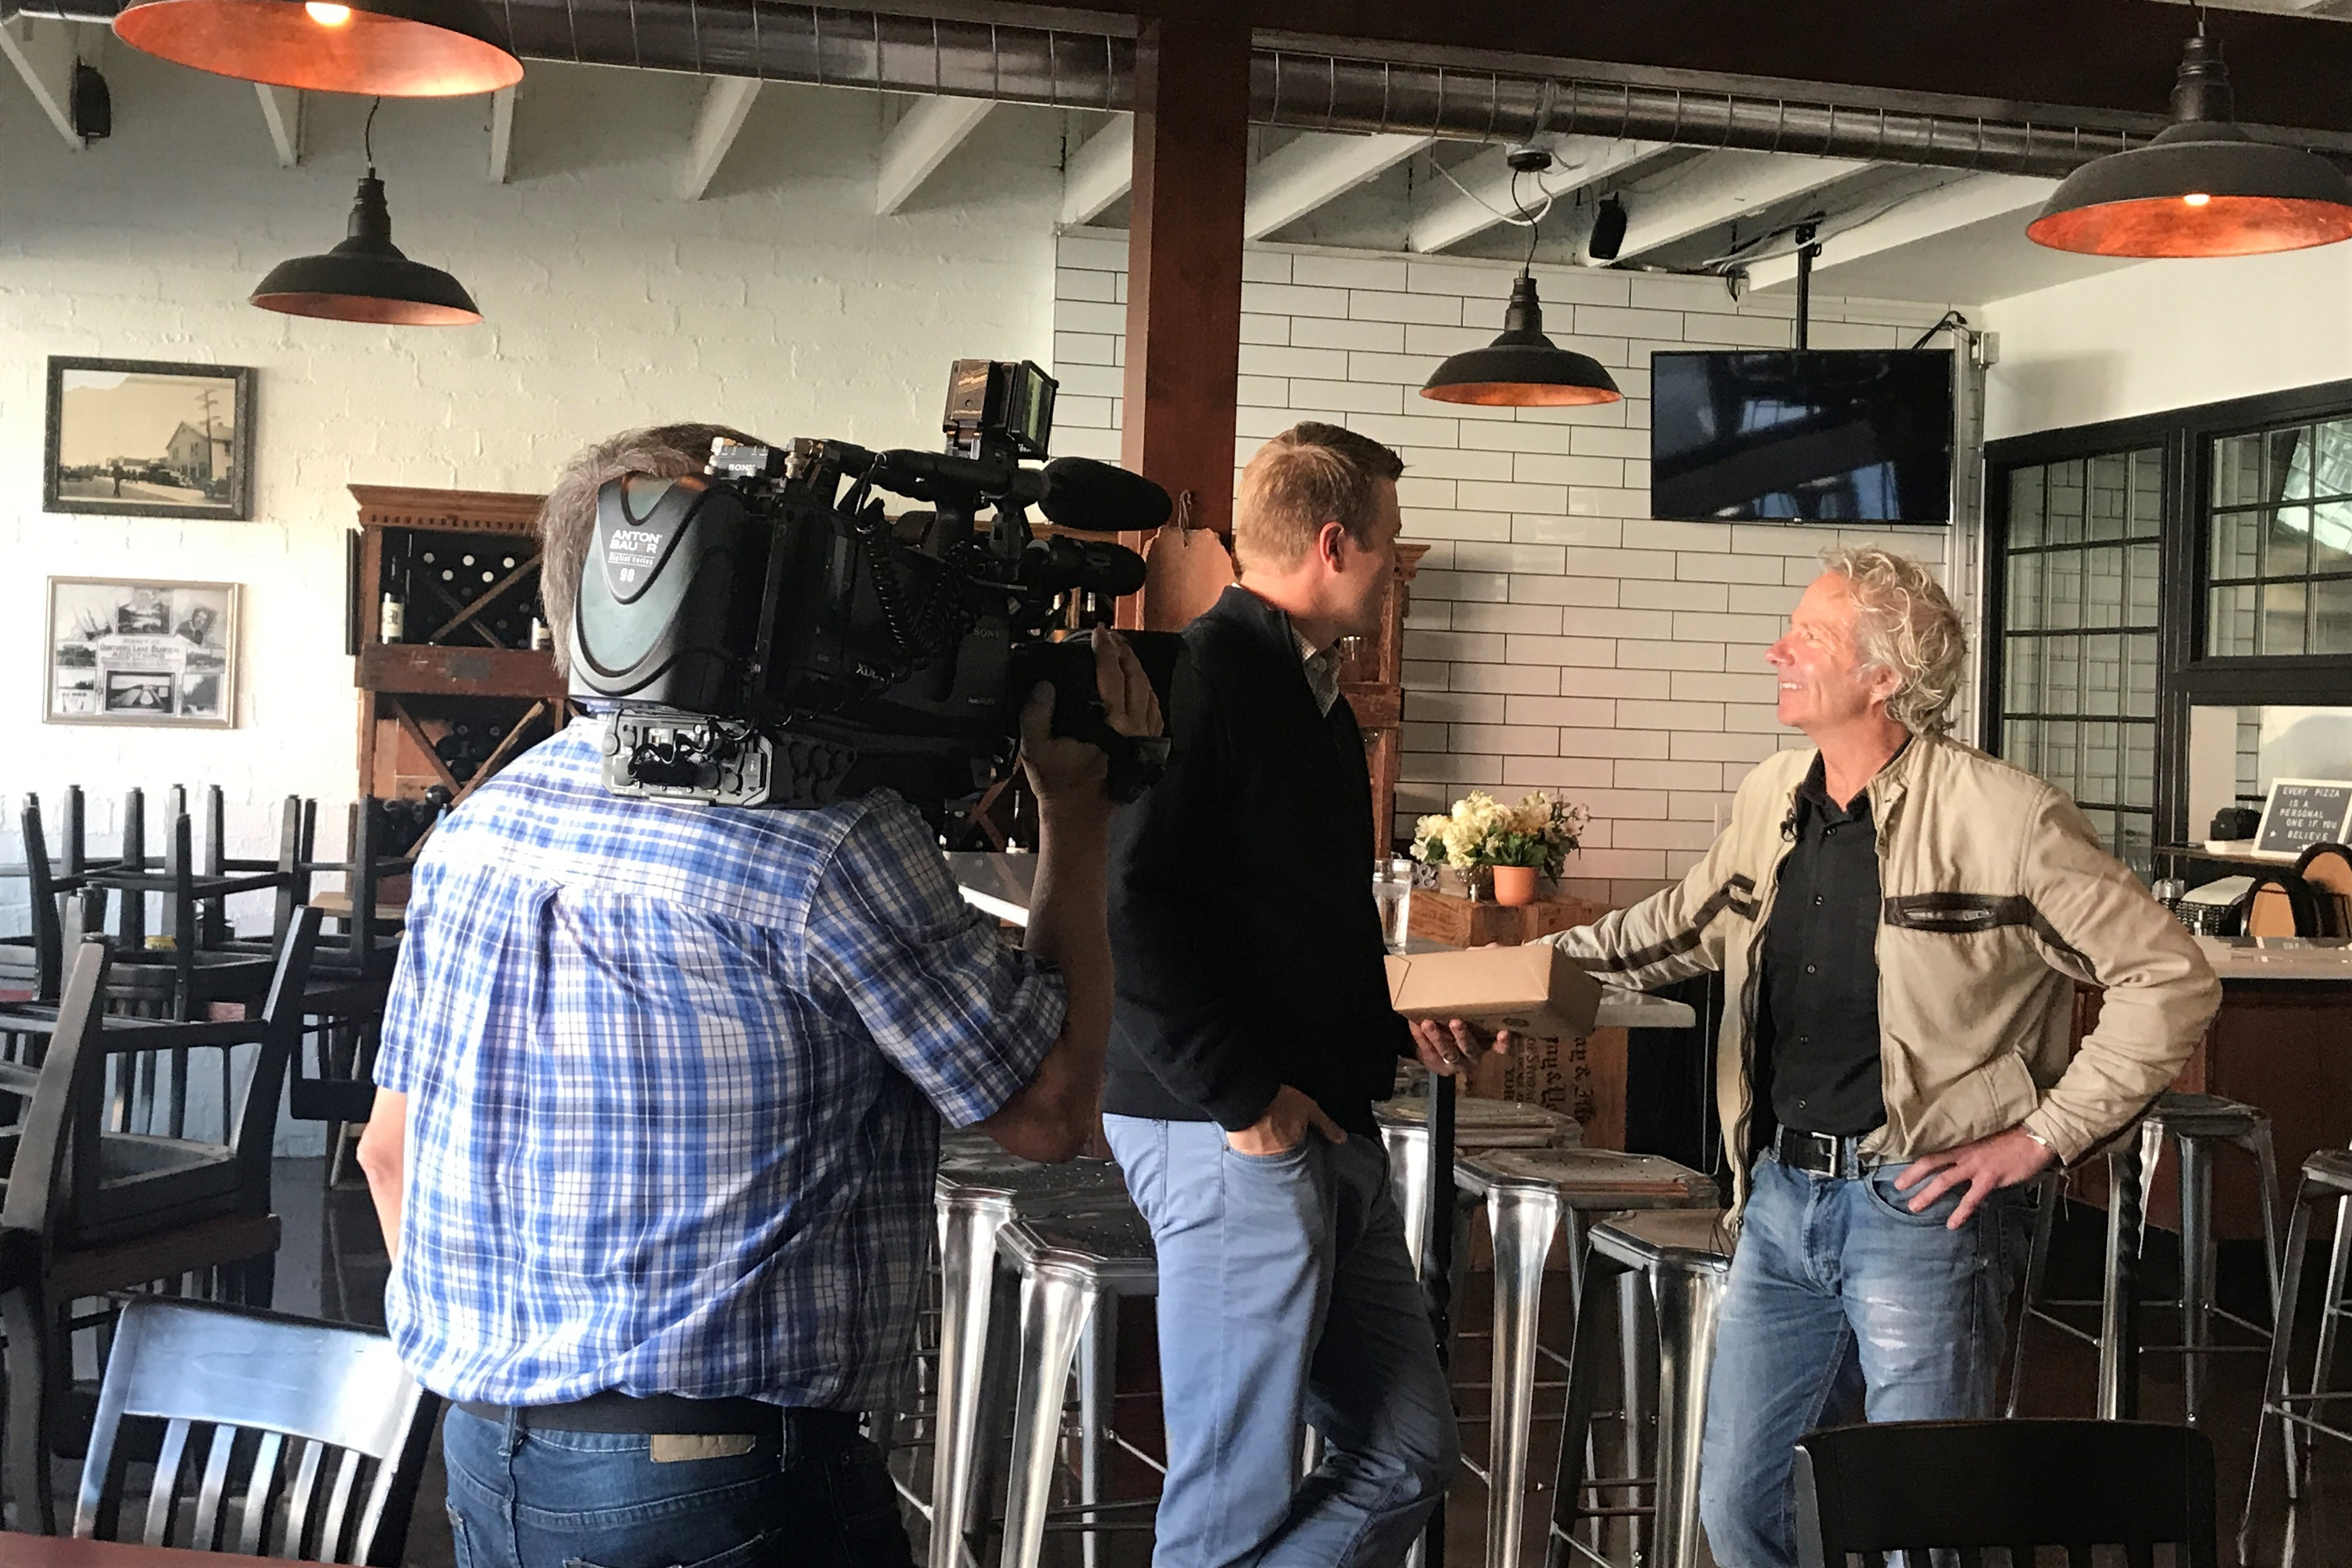 Danny conducting an interview with KING 5 News in the Burien Pizzeria